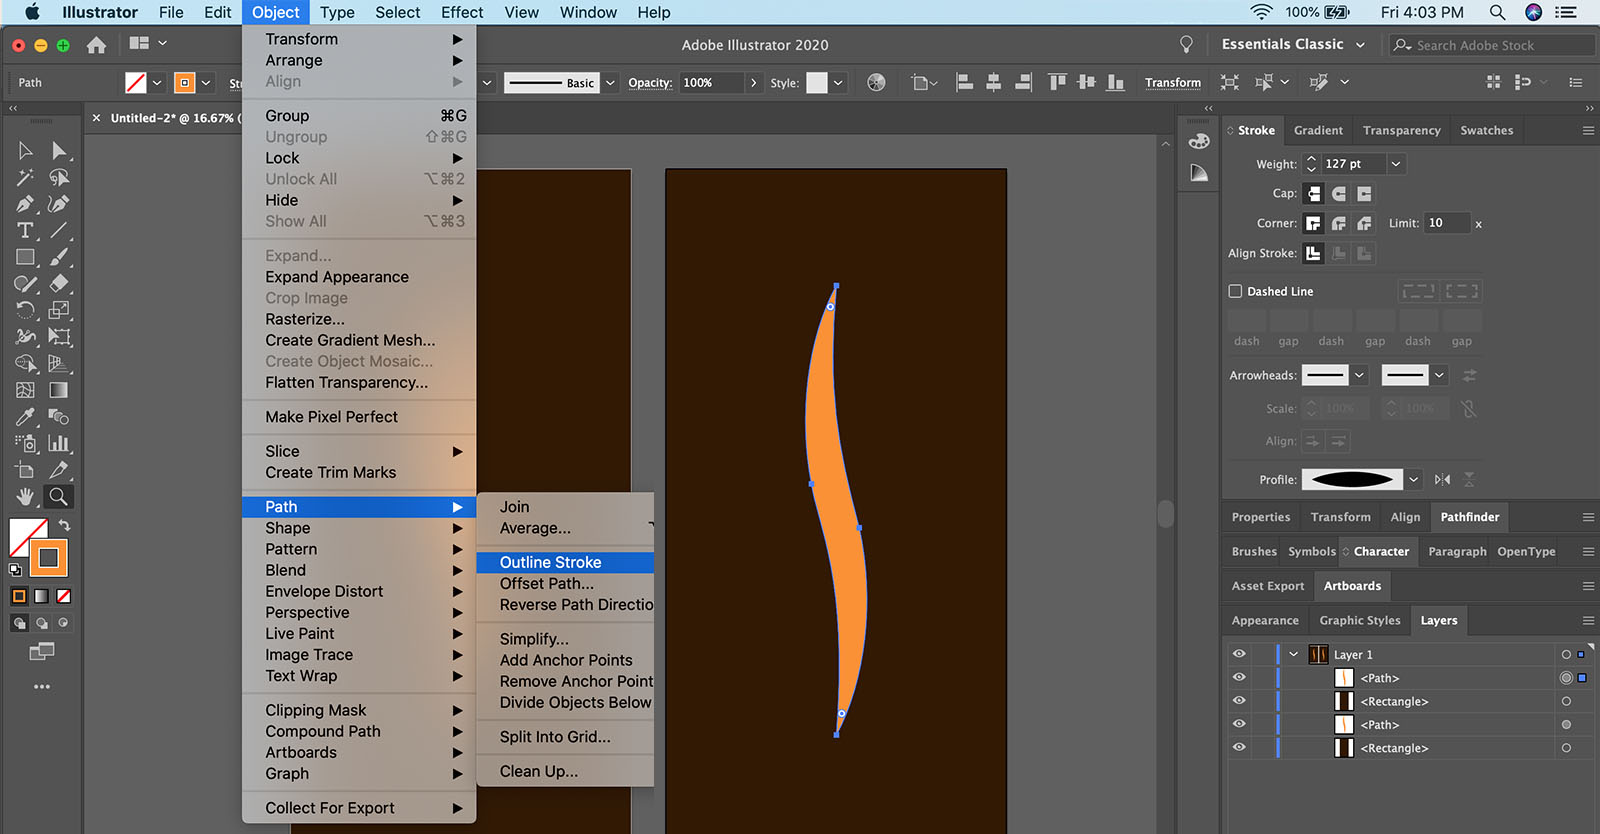 How to outline a stroke in Illustrator